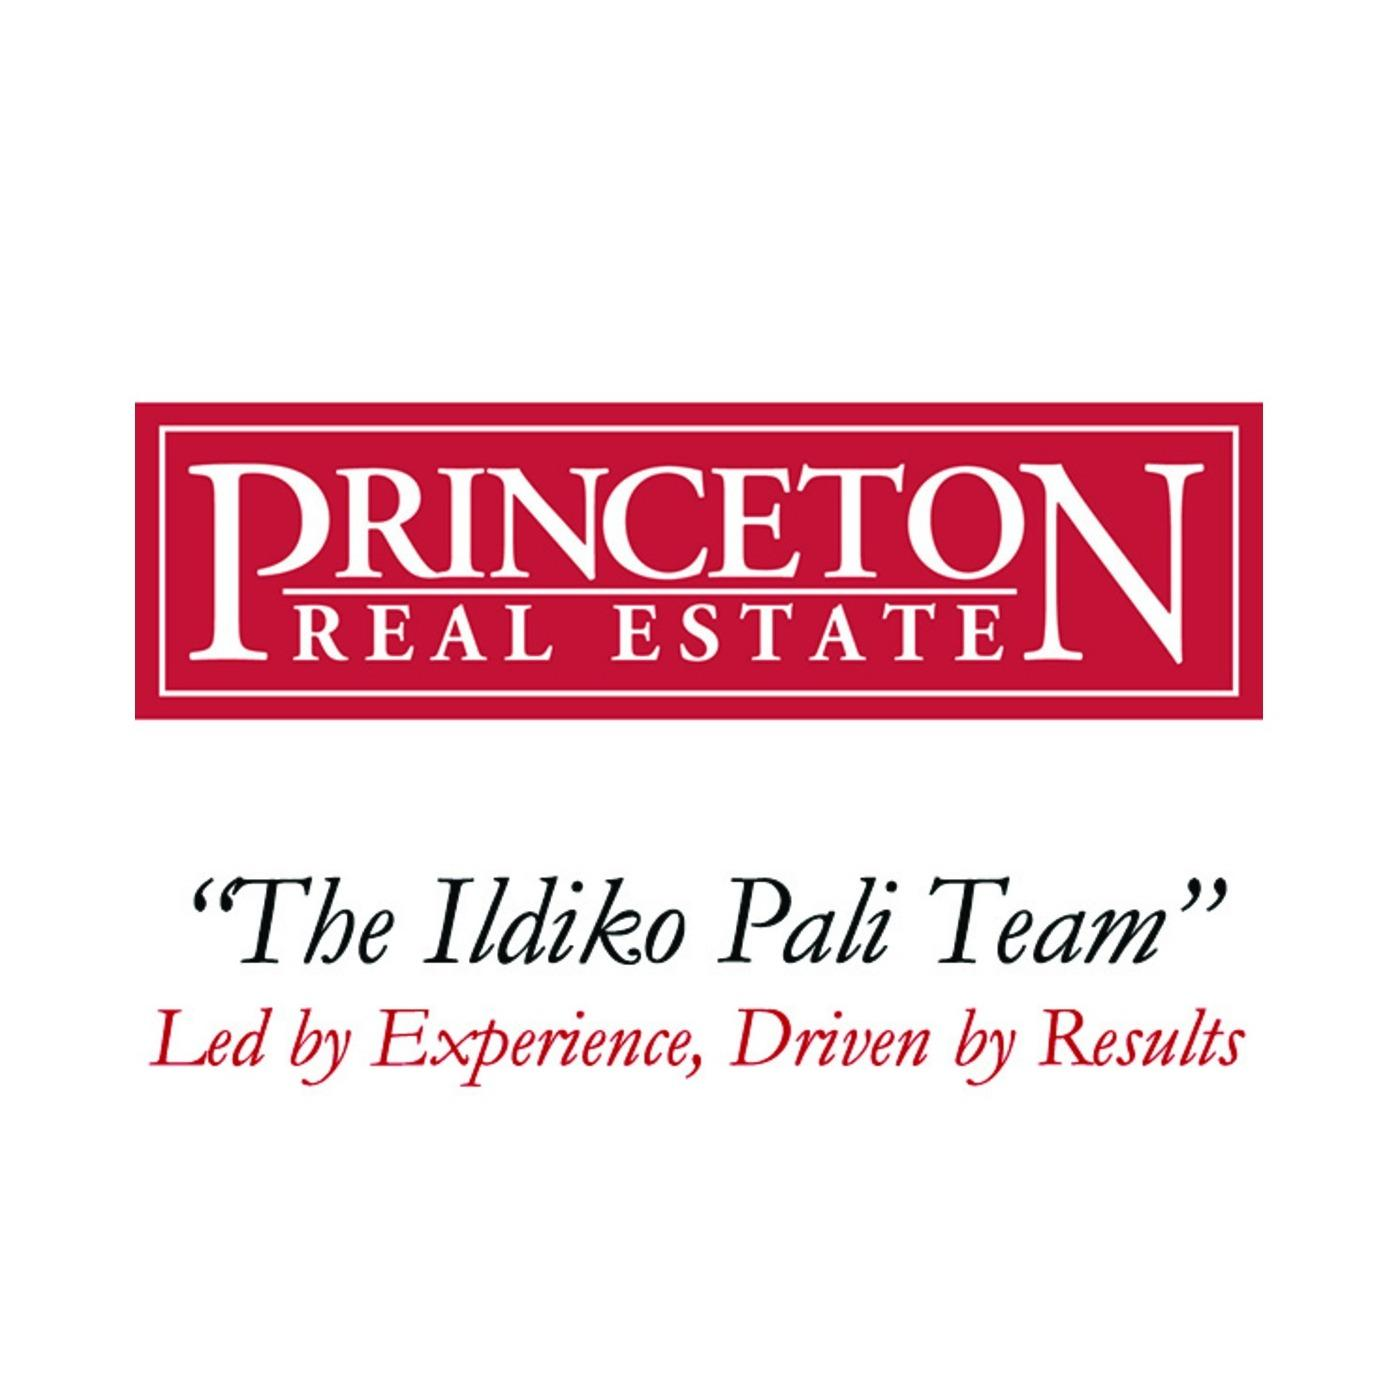 Ildiko Pali - Princeton Real Estate